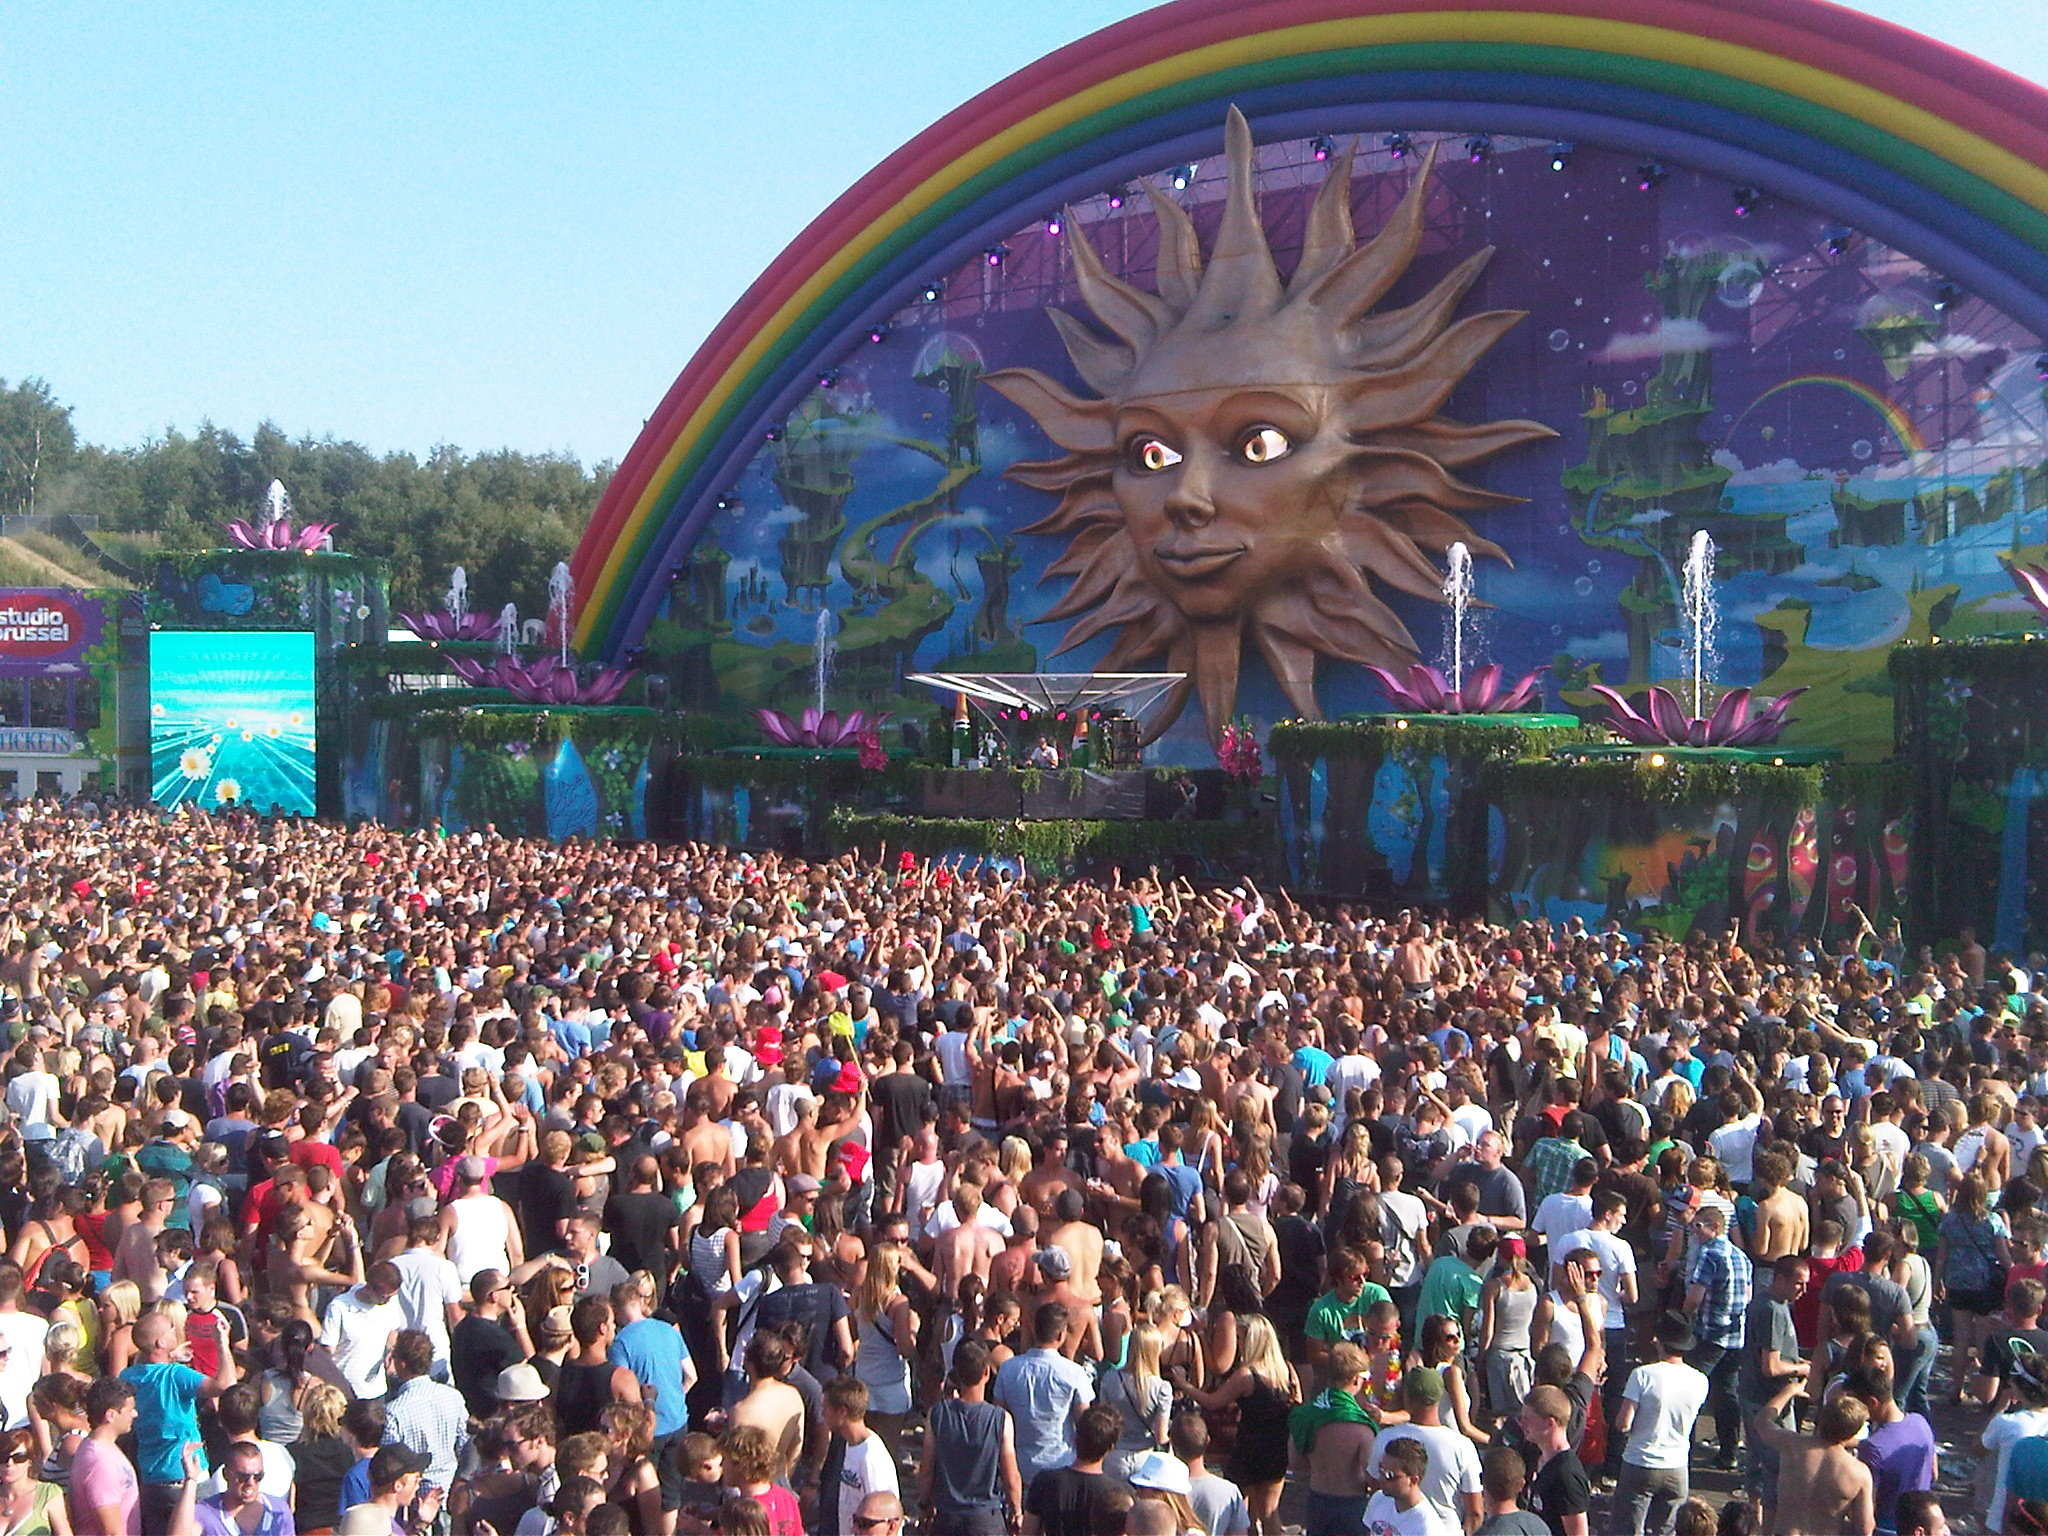 Tomorrowland 2018 Laser Show HD Wallpaper (72+ images) Tomorrowland 2012 Wallpaper